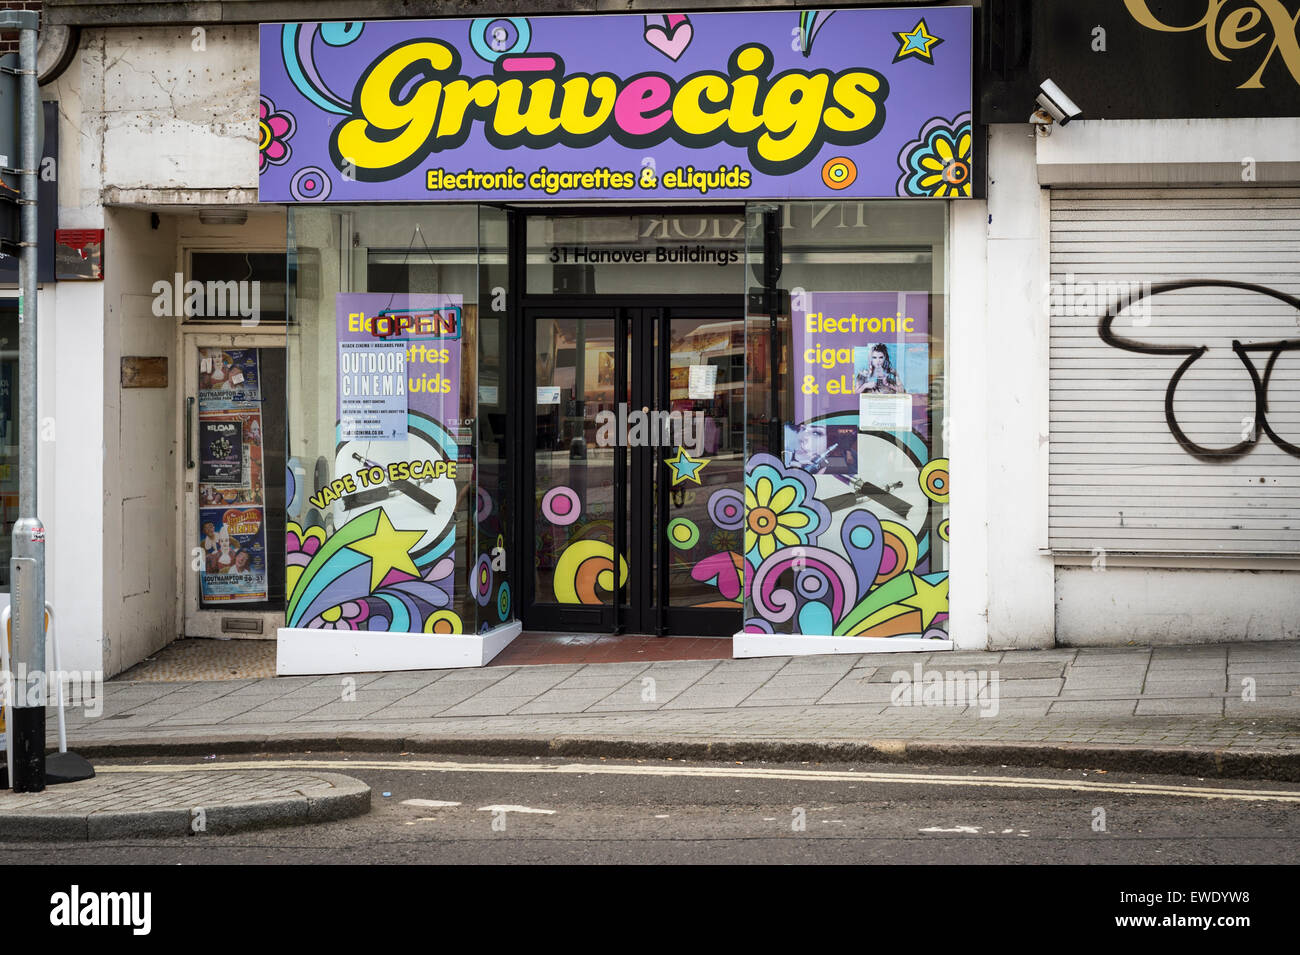 Gruvecigs electronic cigarette and e vapours shop in Southampton UK - Stock Image